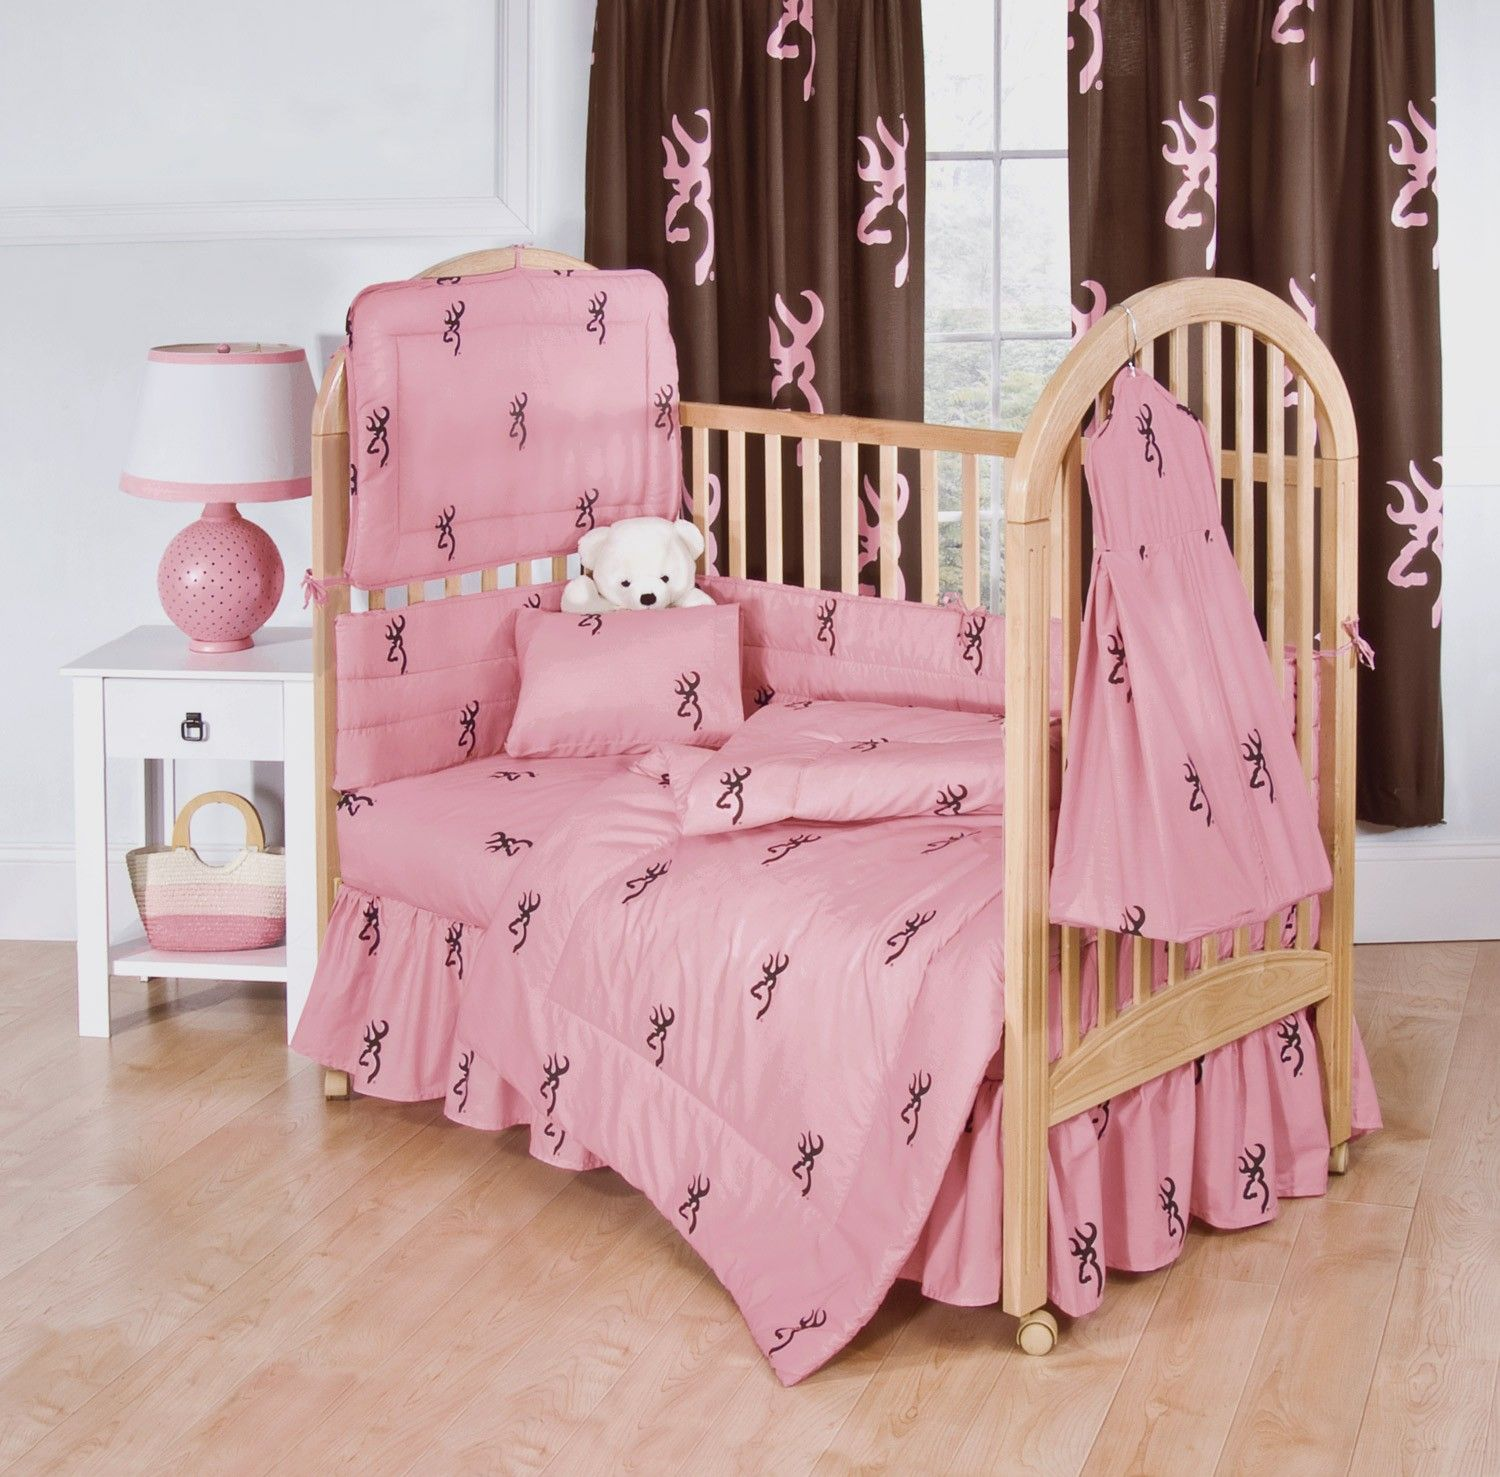 browning buckmark pink crib set browning buckmark pink crib set camo baby bedding